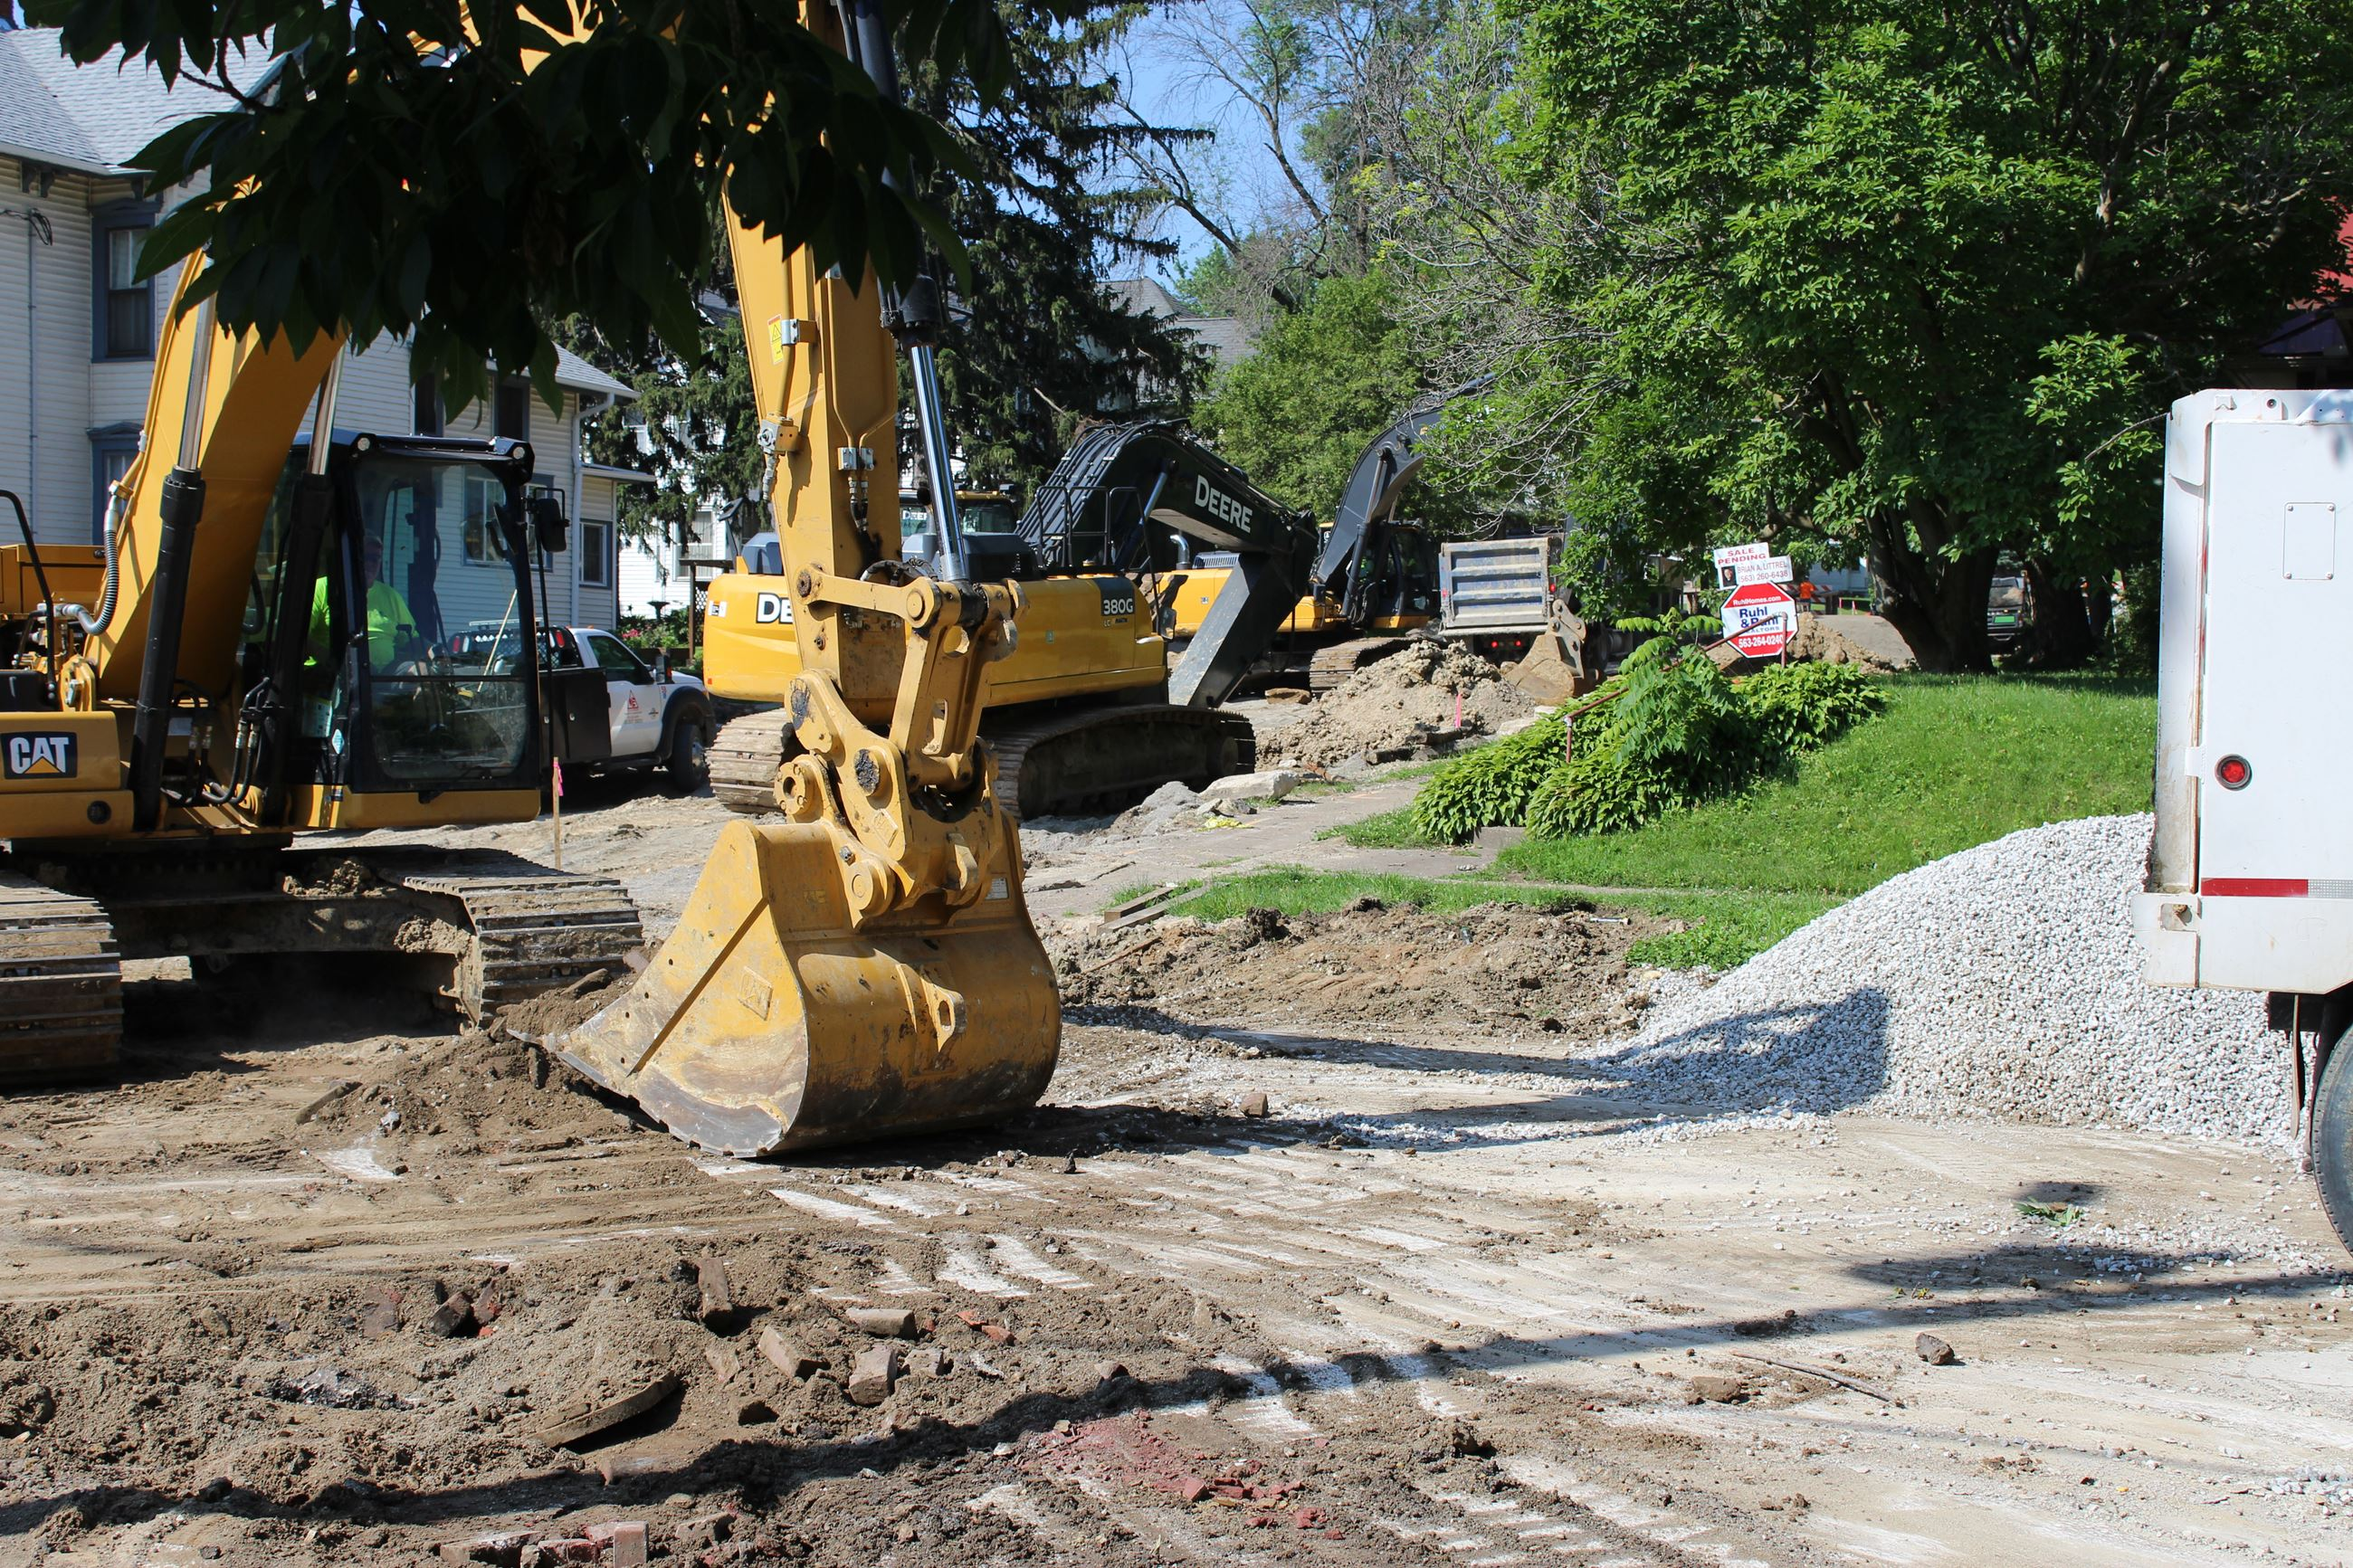 Work on Iowa intersection and up 8th toward Chestnut July 2, 2019 (JPG)